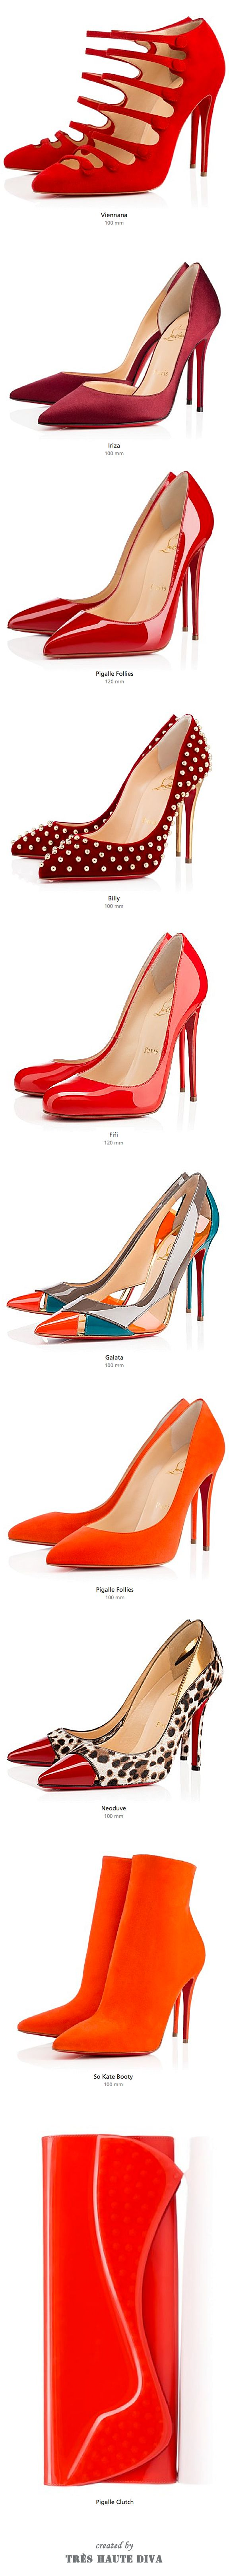 Christian Louboutin Red & Orange, FW'14 ♔THD♔